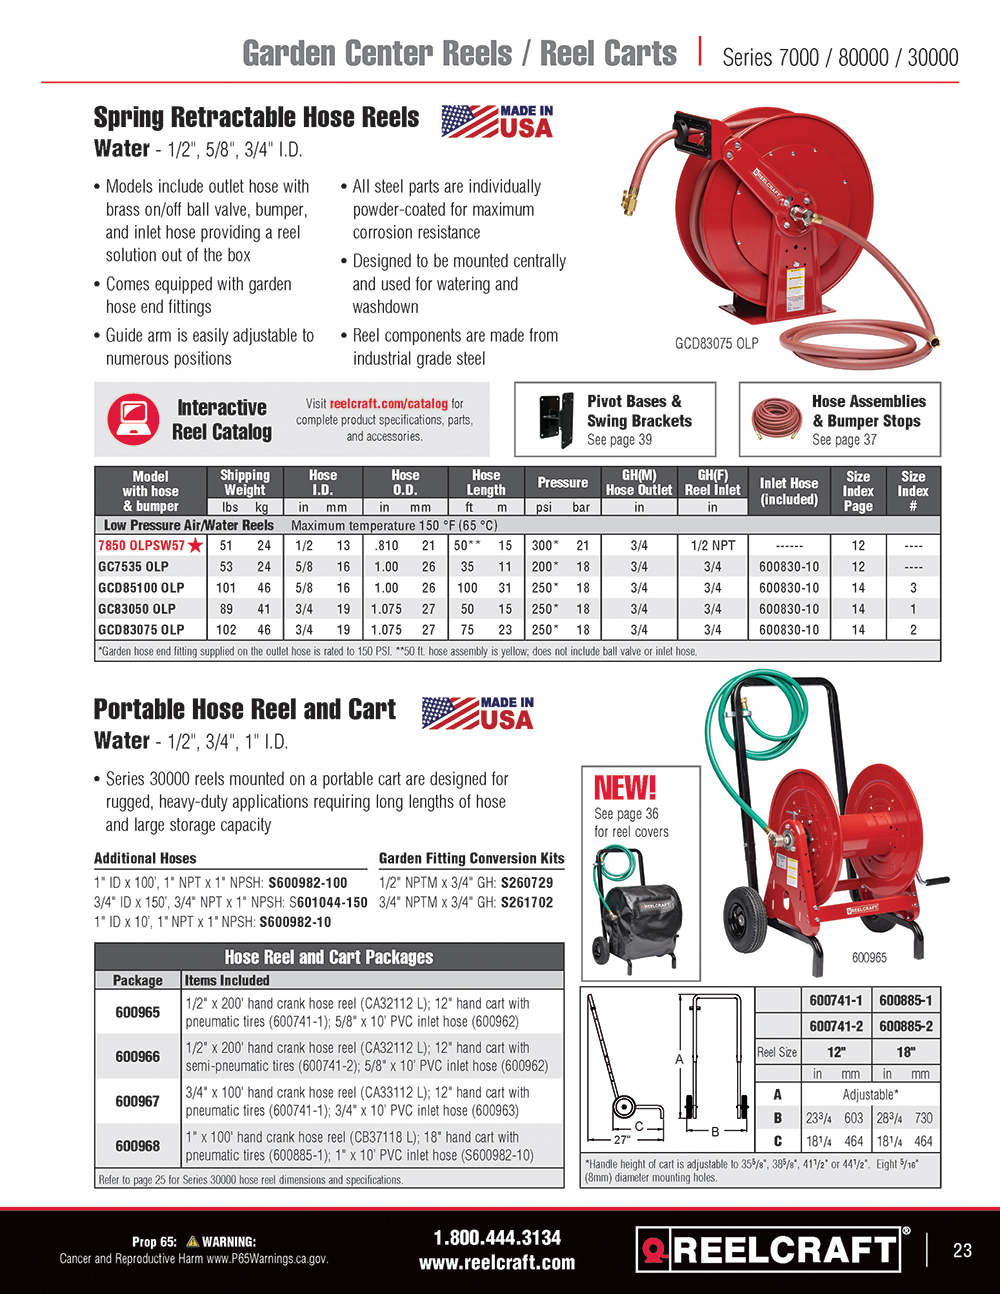 Reelcraft Catalog Page 23 - Series C Hose Reels